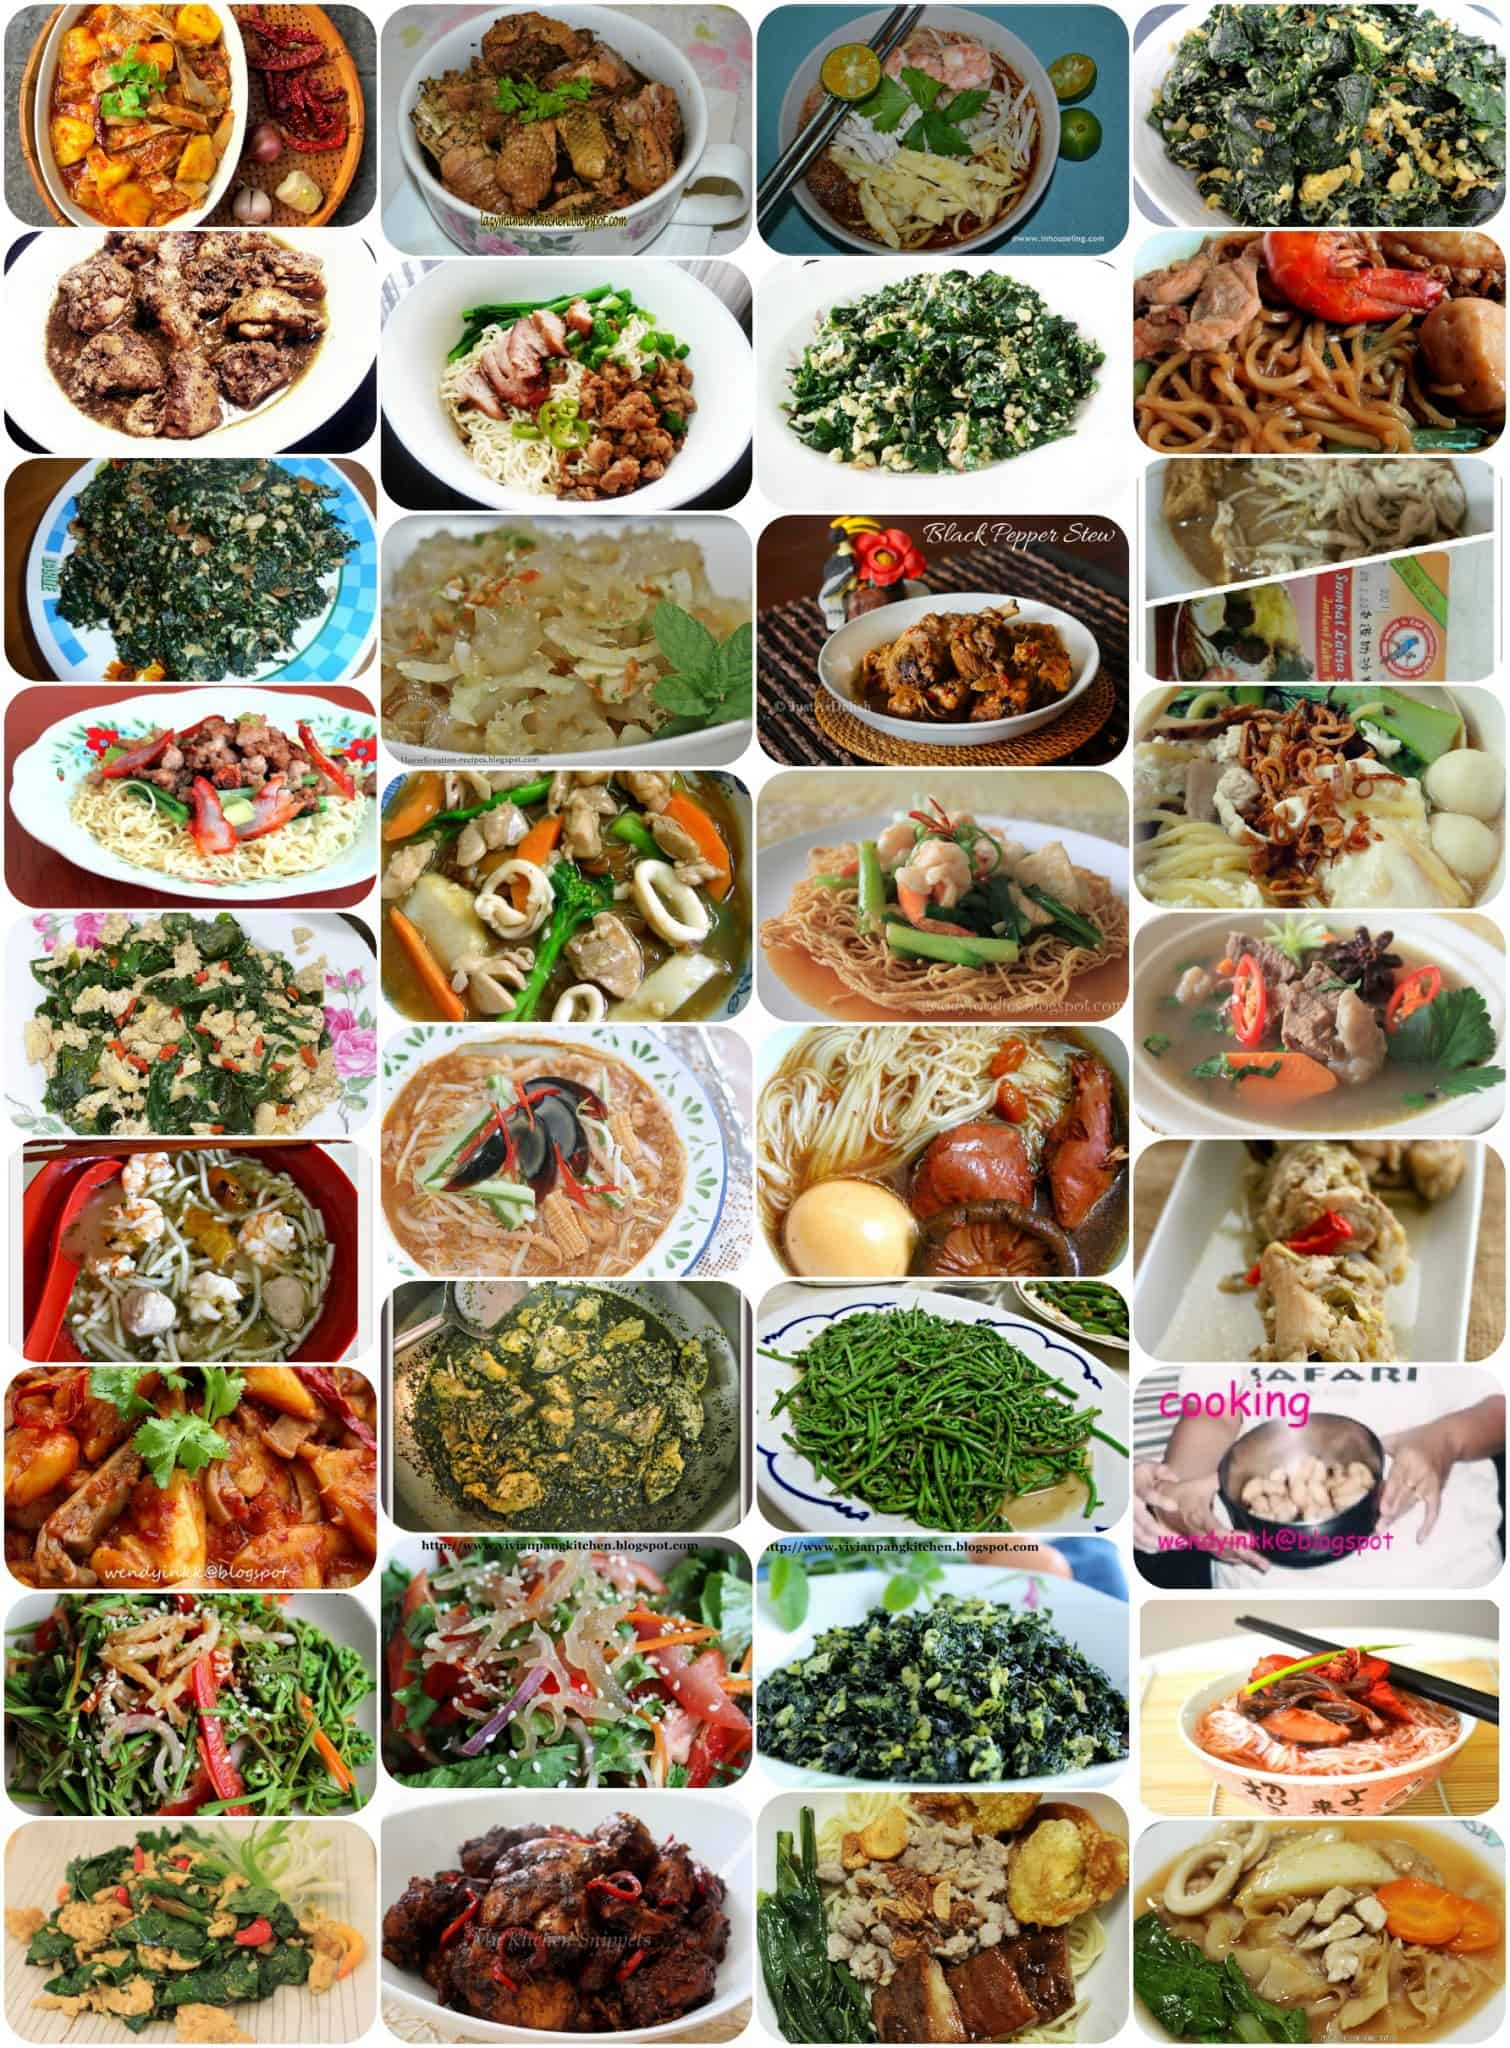 Mff sarawak dishes collage feats of feasts a food blog mff sarawak dishes collage forumfinder Images